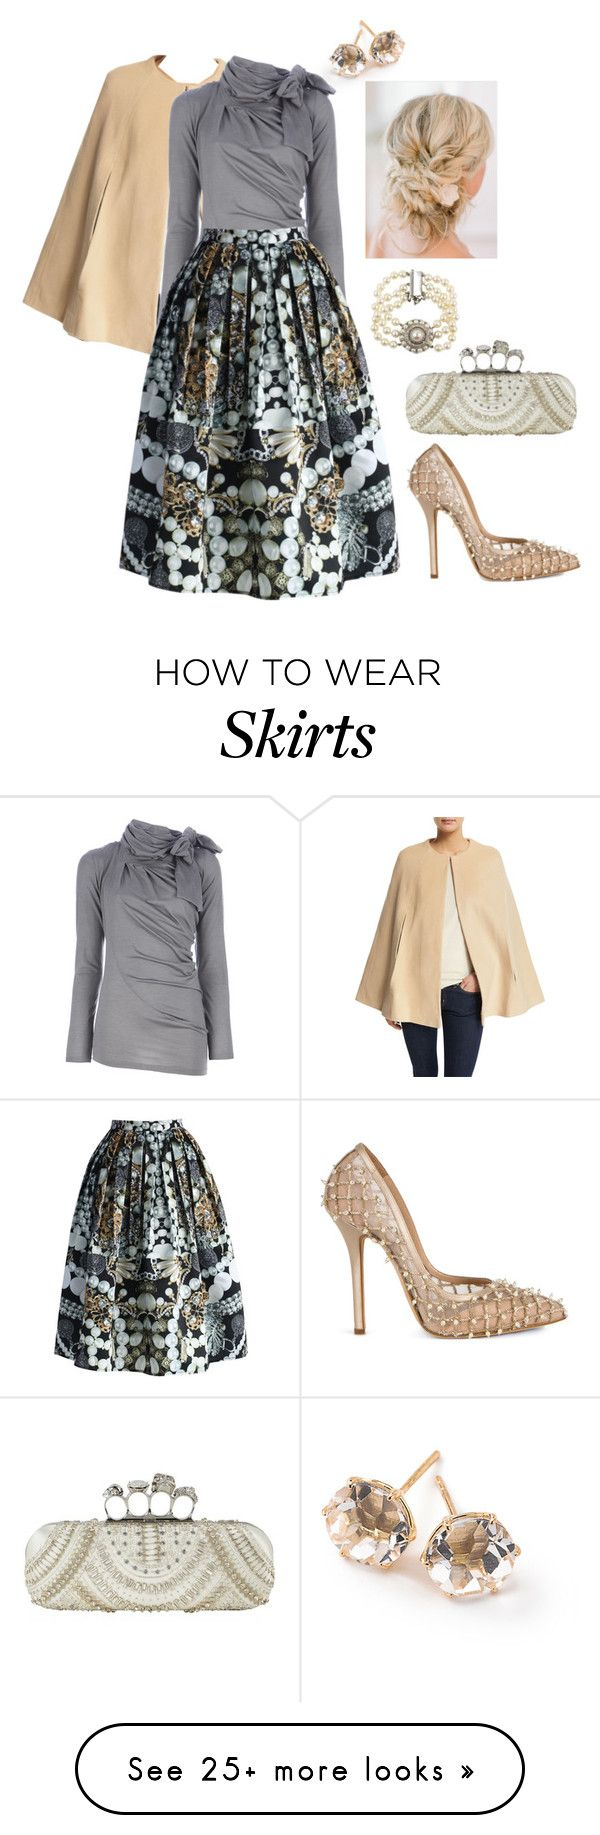 """""""Jewelry Box Skirt"""" by mrs-ginger-boss on Polyvore featuring ThePerfext, Ippolita, Alexander McQueen, Chicwish, Oscar de la Renta and Lucien Piccard"""